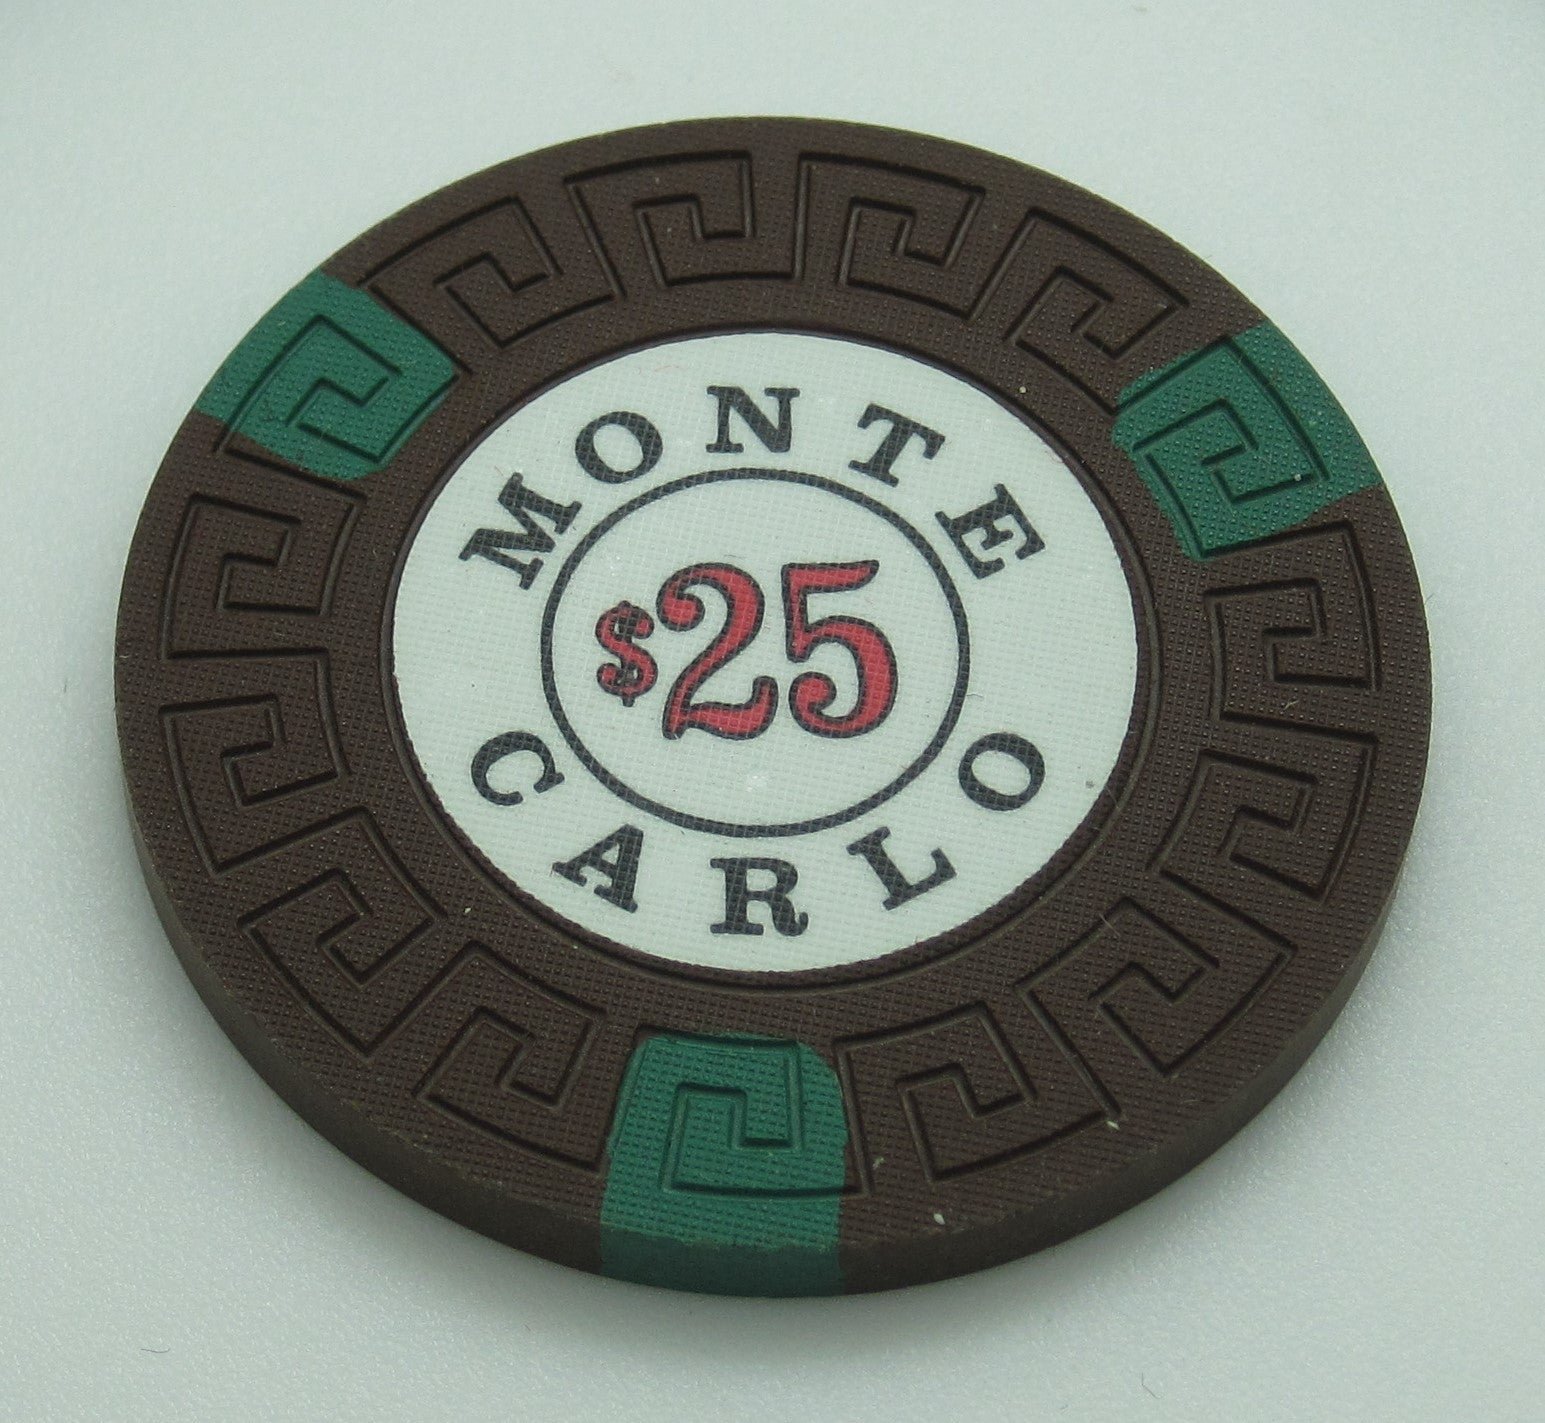 Monte Carlo Casino Reno NV $25 Chip 1976